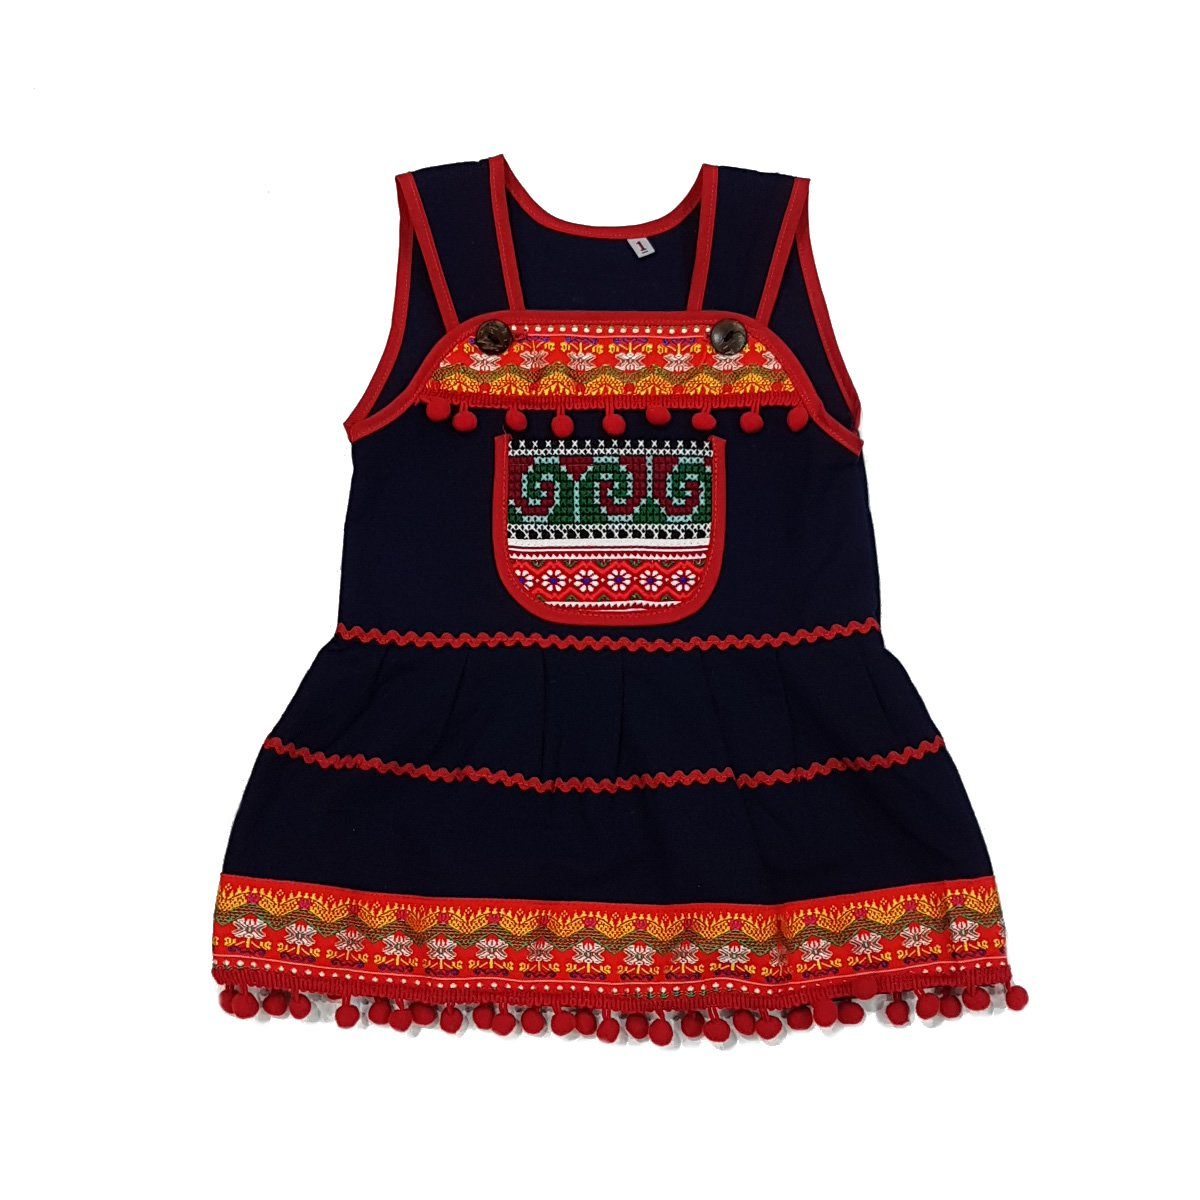 ARTIIDCO Beautiful Woven Cotton Ethnic Thai Girl Dress with Hand Embroidered Details 3 to 4 Year